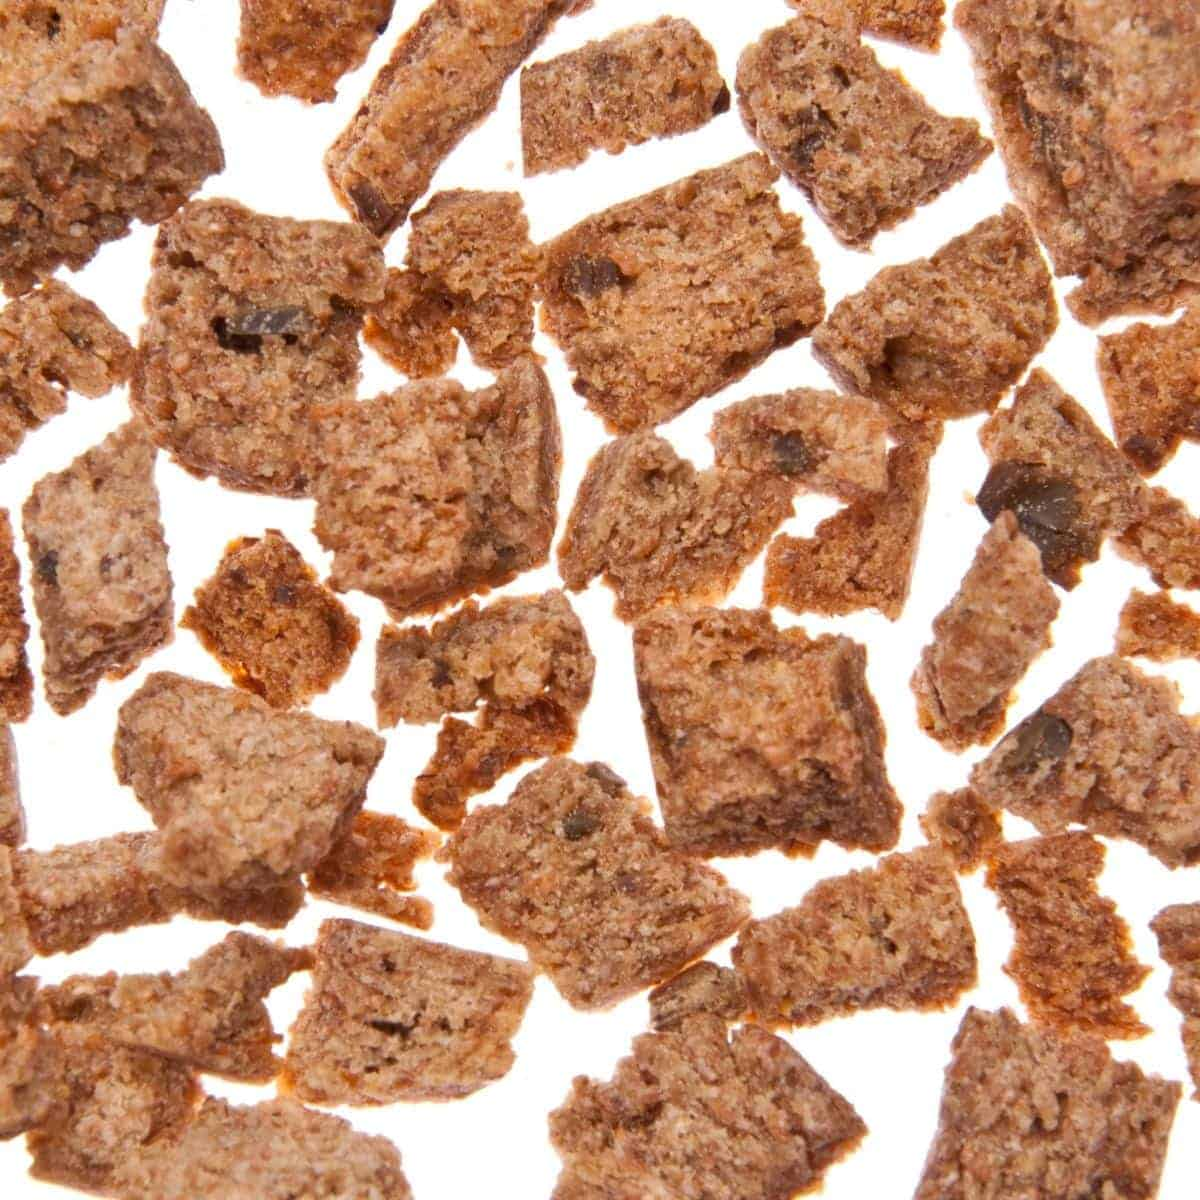 dehydrated liver dog treats